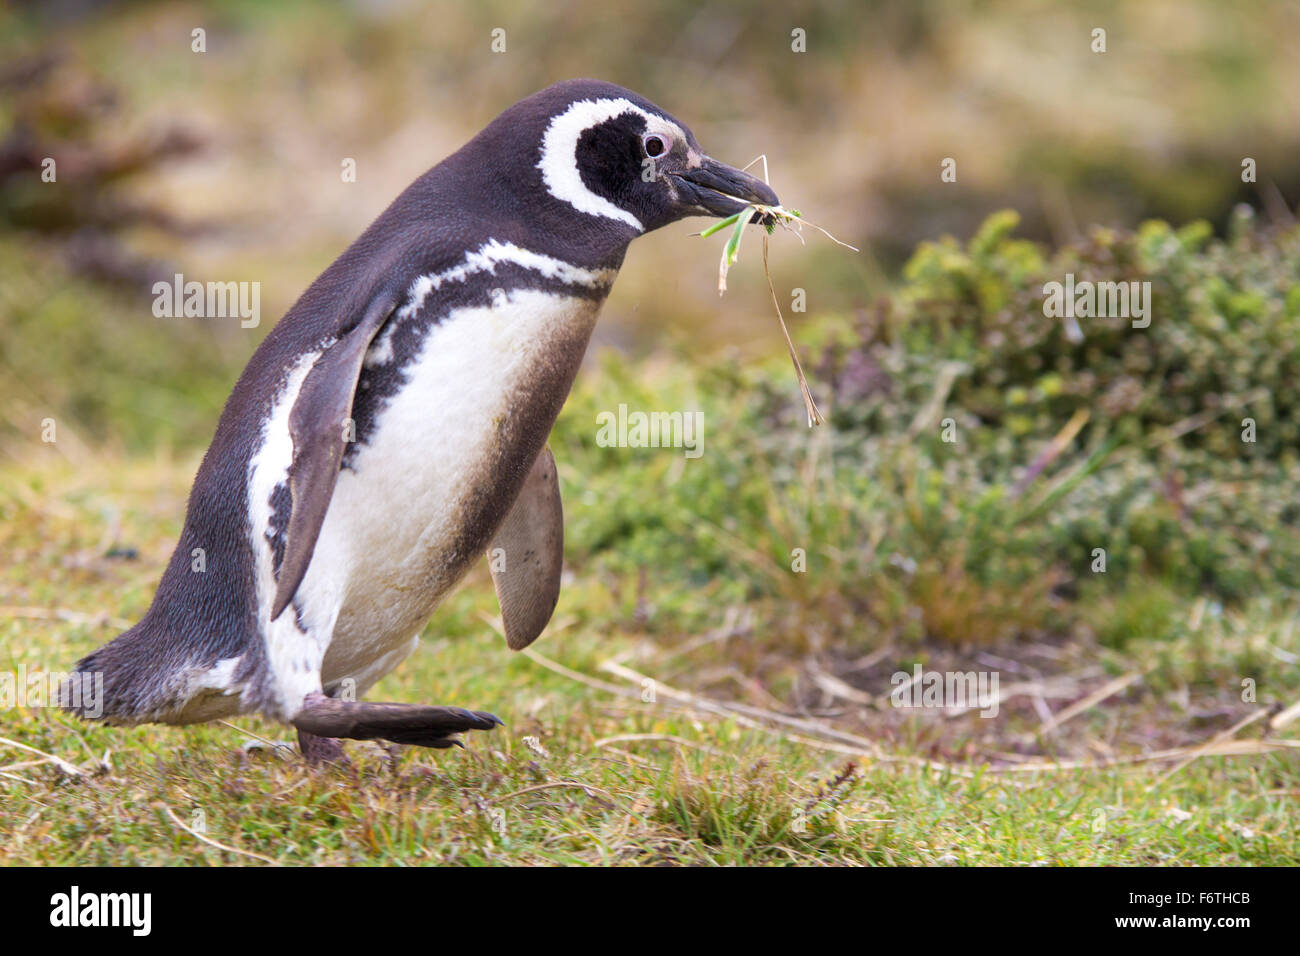 Magellanic penguin gathering nest materials. Gypsy Cove, Falkland Islands - Stock Image